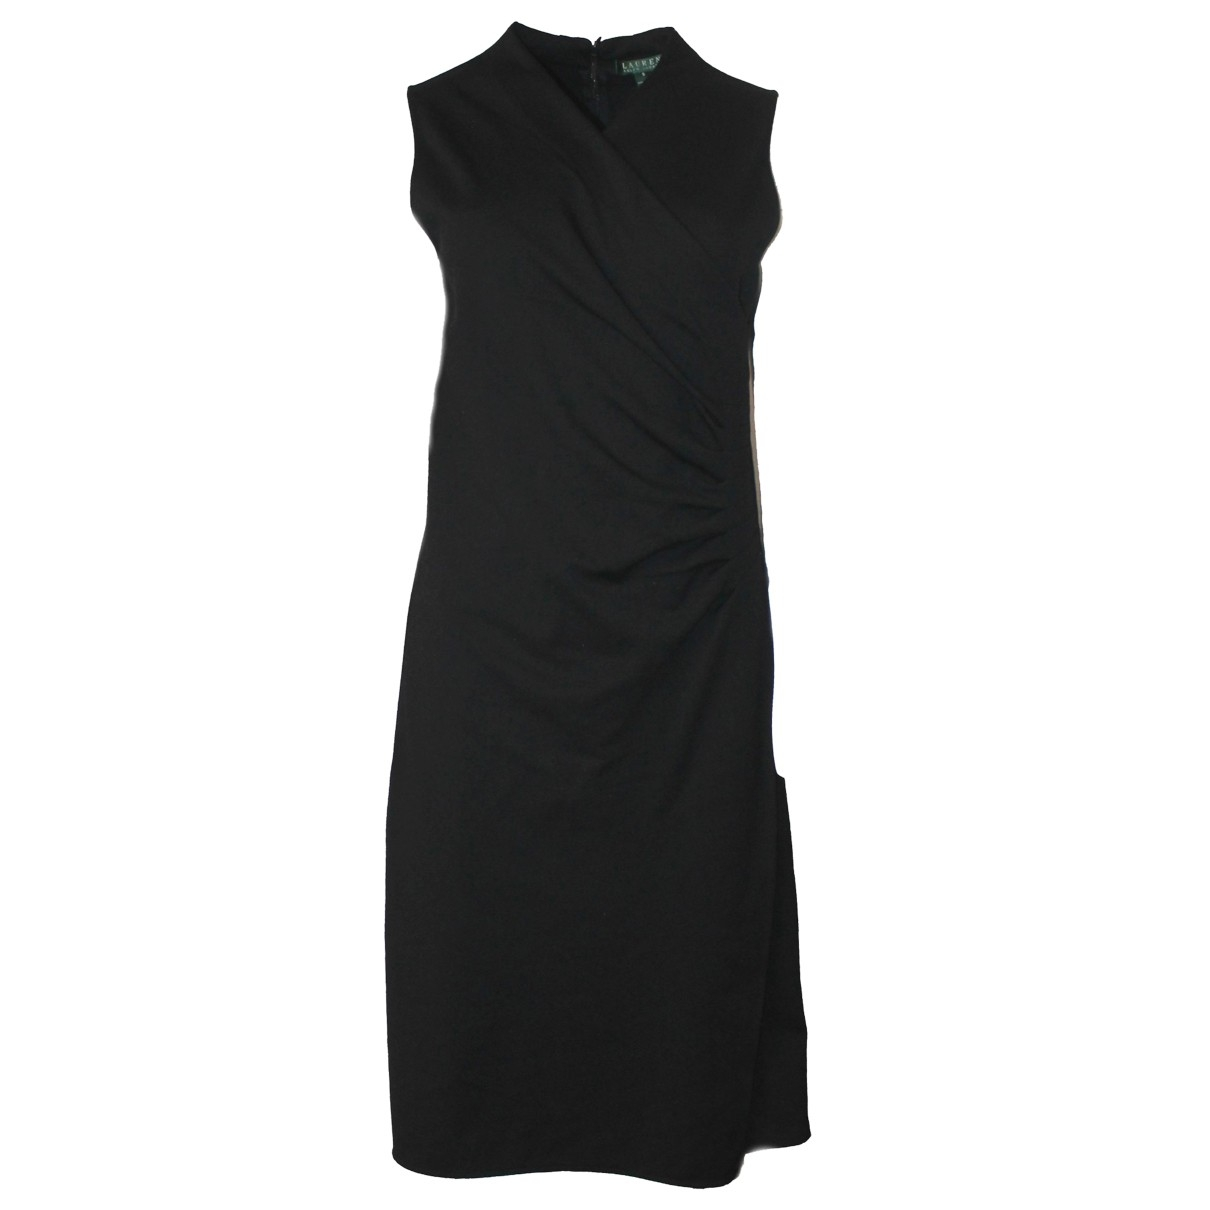 Lauren Ralph Lauren \N Black dress for Women S International